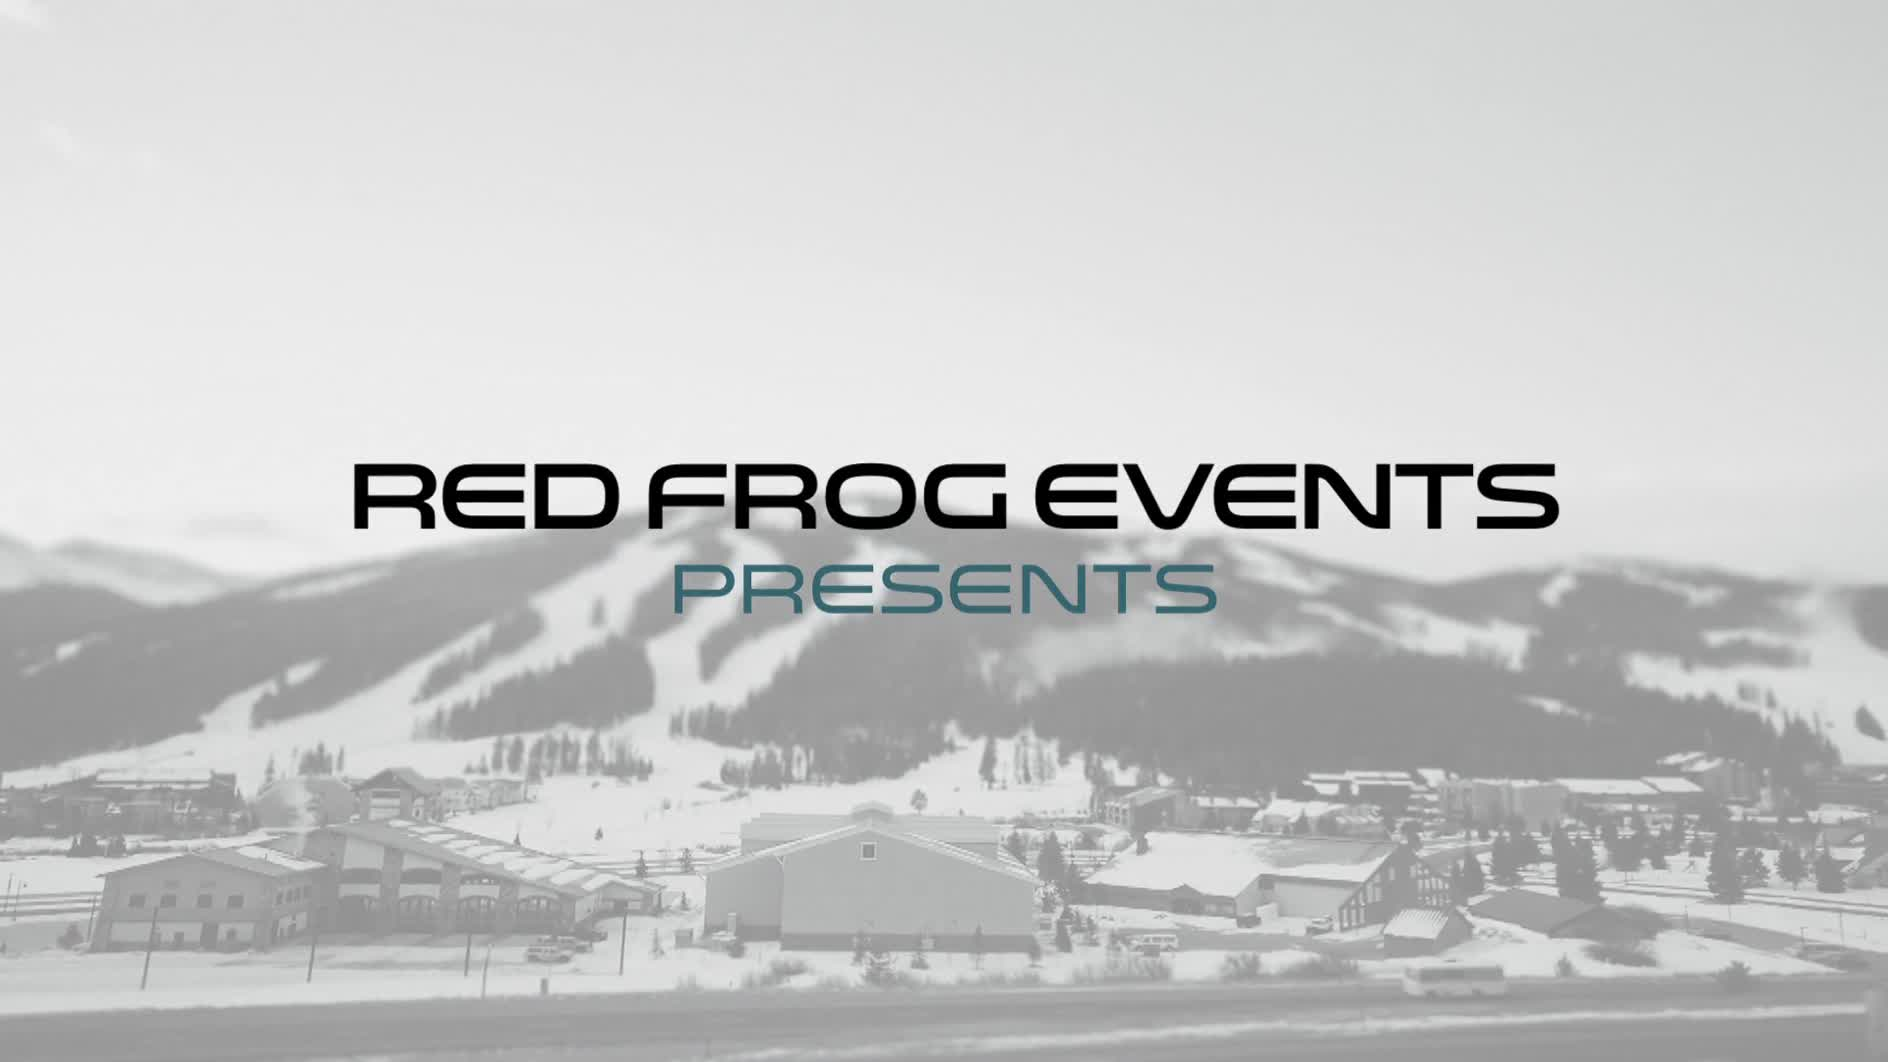 The inaugural Apres-Ski Weekend hits Copper Mountain Ski Resort from December 4th-7th. Guests will be treated to an elevated ski experience from the moment they get off the plane by receiving champagne aboard a private shuttle. On the way to the slopes, they'll toast to the weekend ahead, full of exclusive themed parties and ski runs, bonfires, hot tubs, and more. Visit ApresSkiWeekend.com for more information regarding what's included or to make reservations.